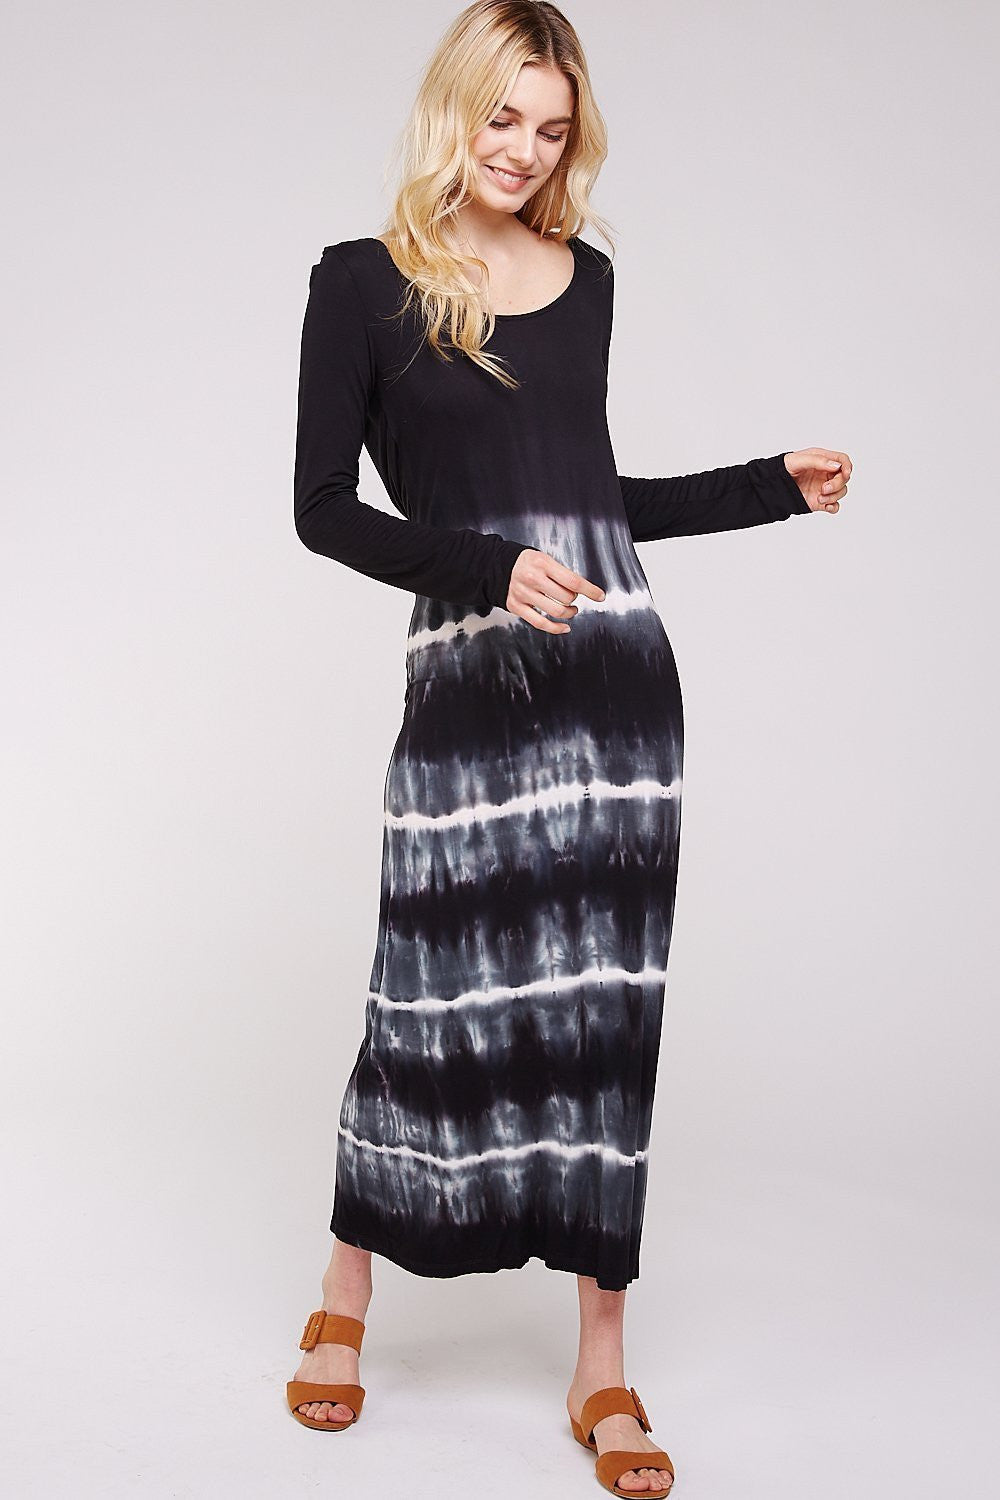 Wholesale Clothing, Online Wholesale Clothing, Women Clothing, Bohemian, Free People, tiedye, specialty wash, wholesale seller, wholesale women clothing shop, gypsy look, USA made, URBAN X APPAREL-MAXI-UDR30381, fashiontrend2019